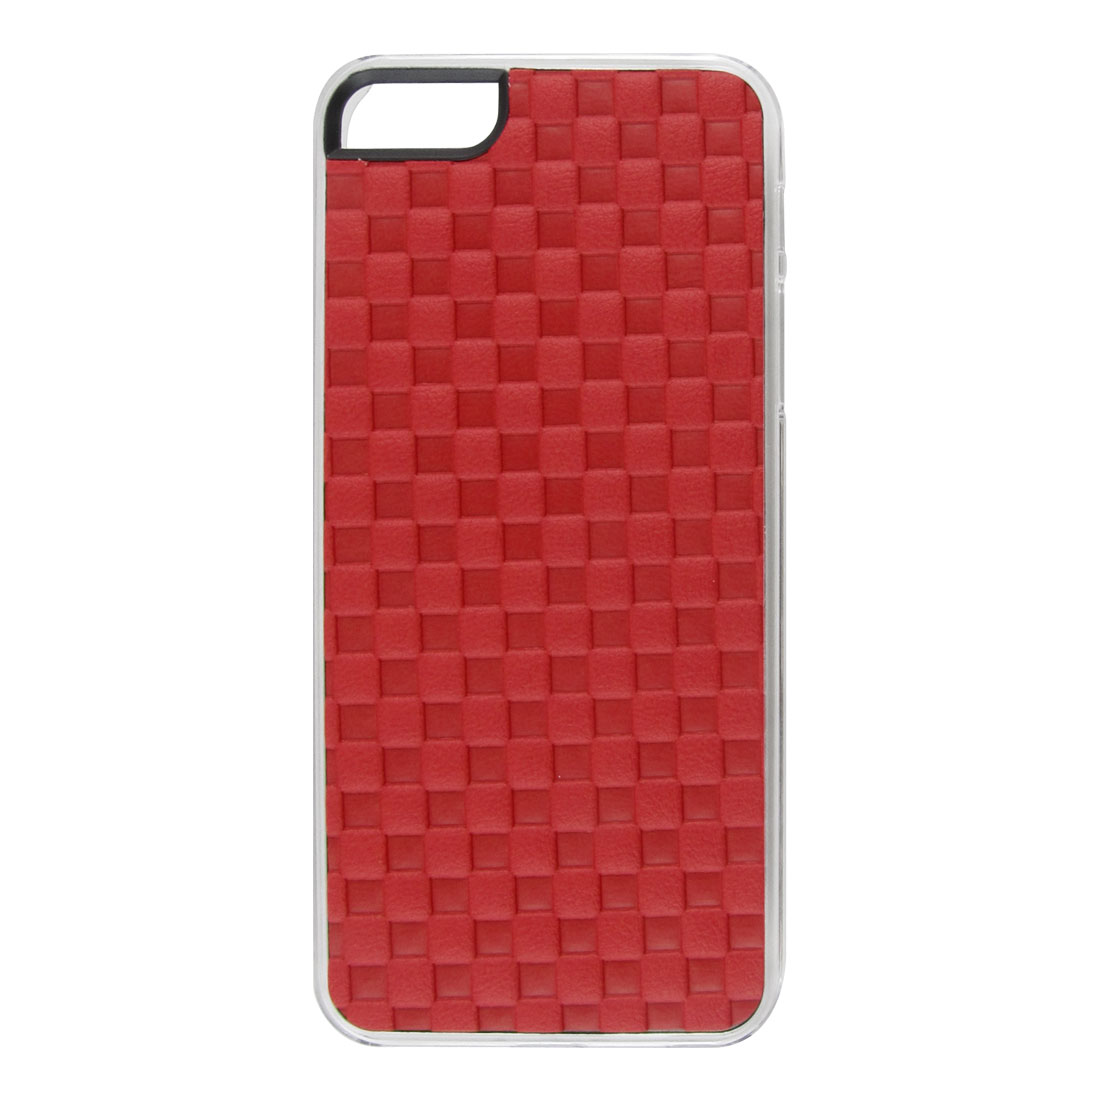 Red Faux Leather Coated Check Hard Back Case Cover for Apple iPhone 5 5G 5th